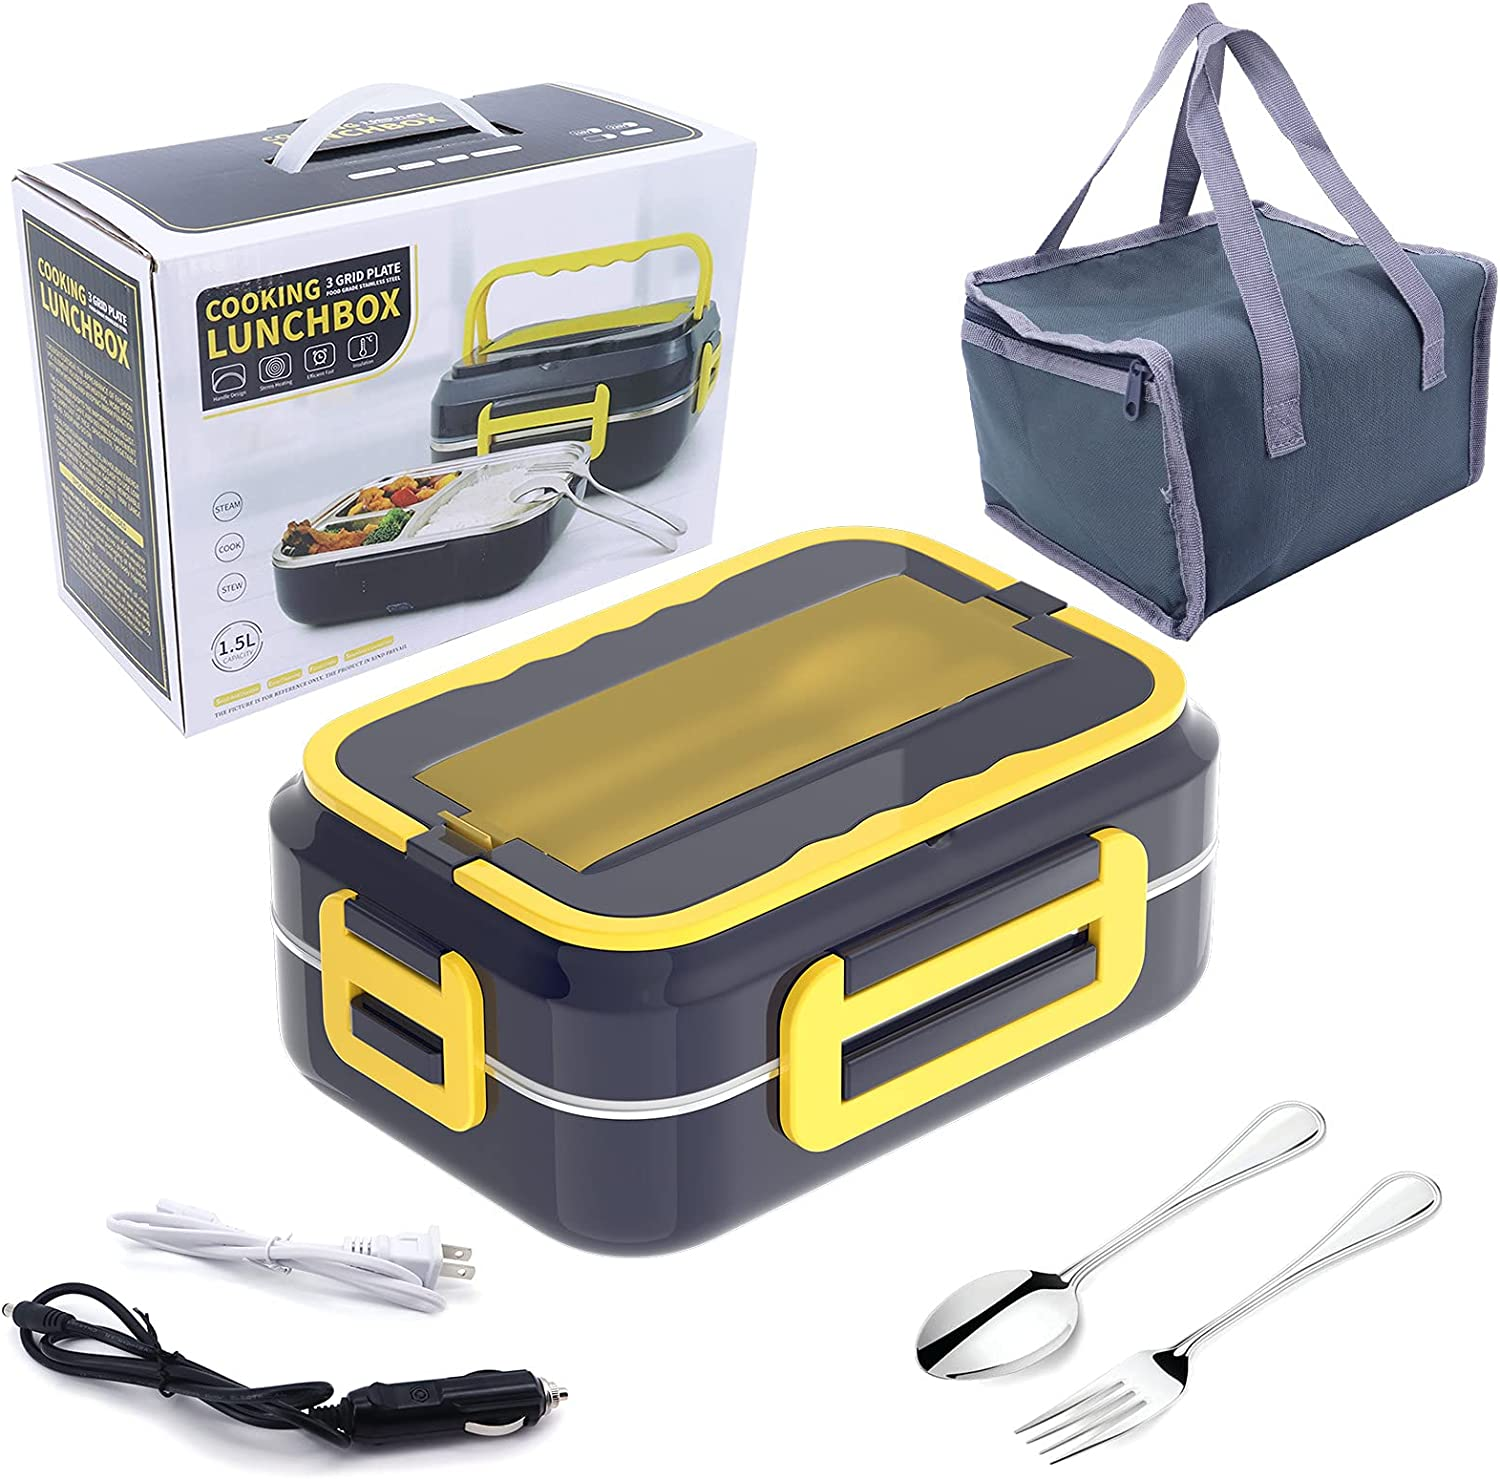 Buwico Electric Lunch Box for Car and Home, Man/Woman Portable Microwave for Travel, food warmer lunch box with Carry Bag, Includes 3 Compartments Removable 304 Stainless Steel Food Heater Container